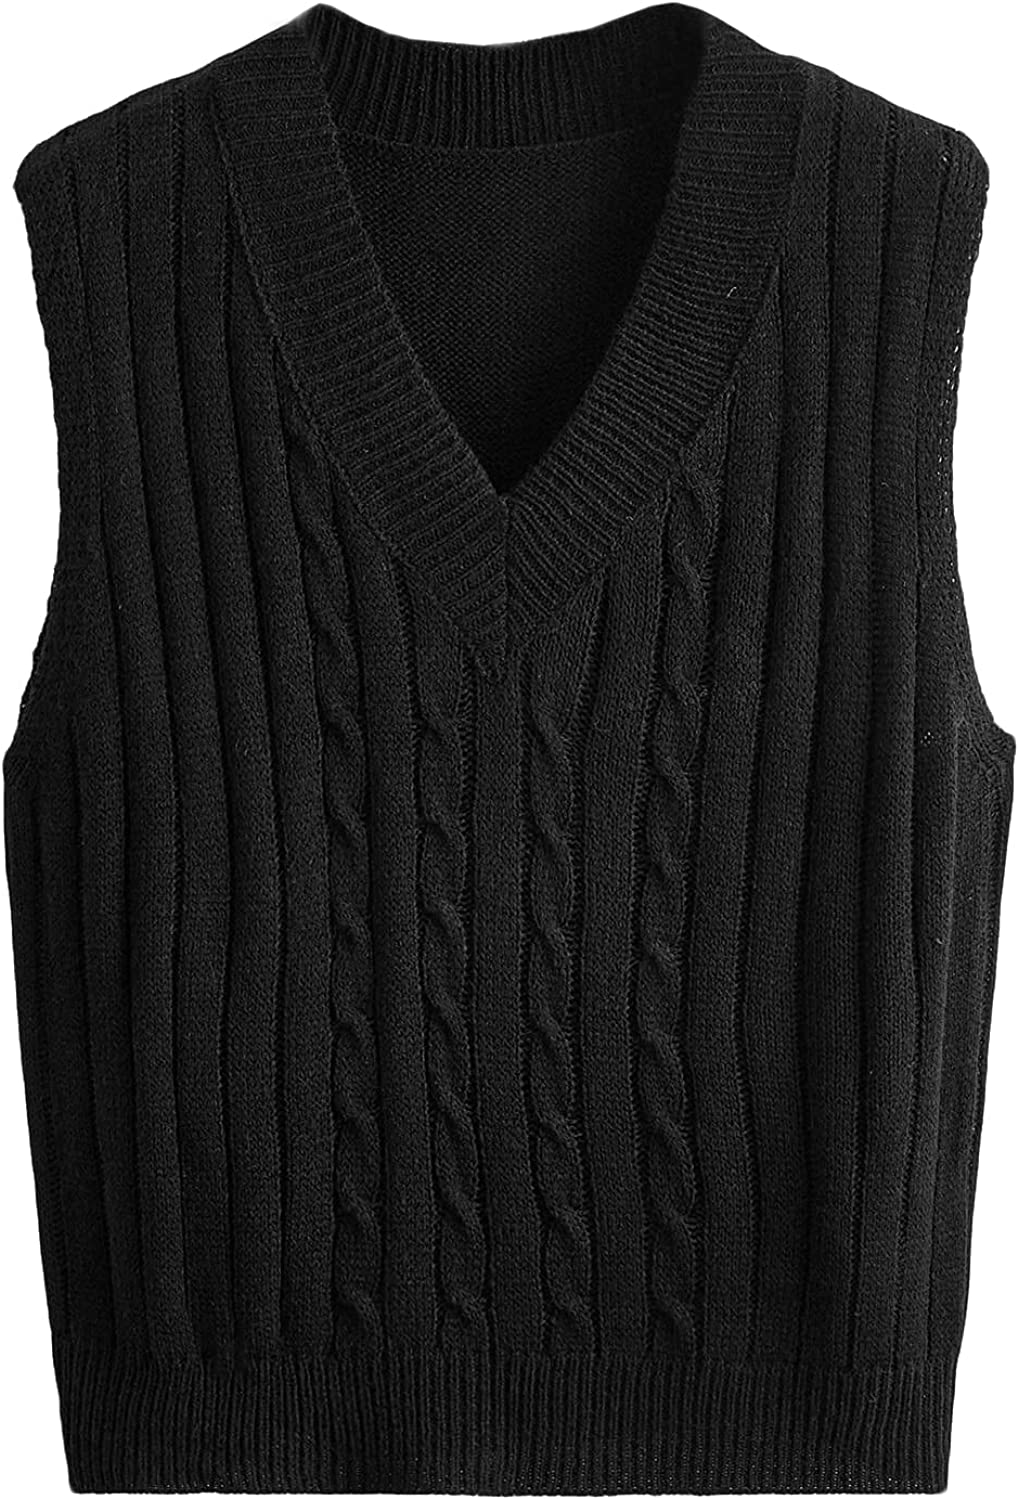 Milumia Women's Casual Cable Knit Sweater Vest V Neck Sleeveless Solid Ribbed Tank Top